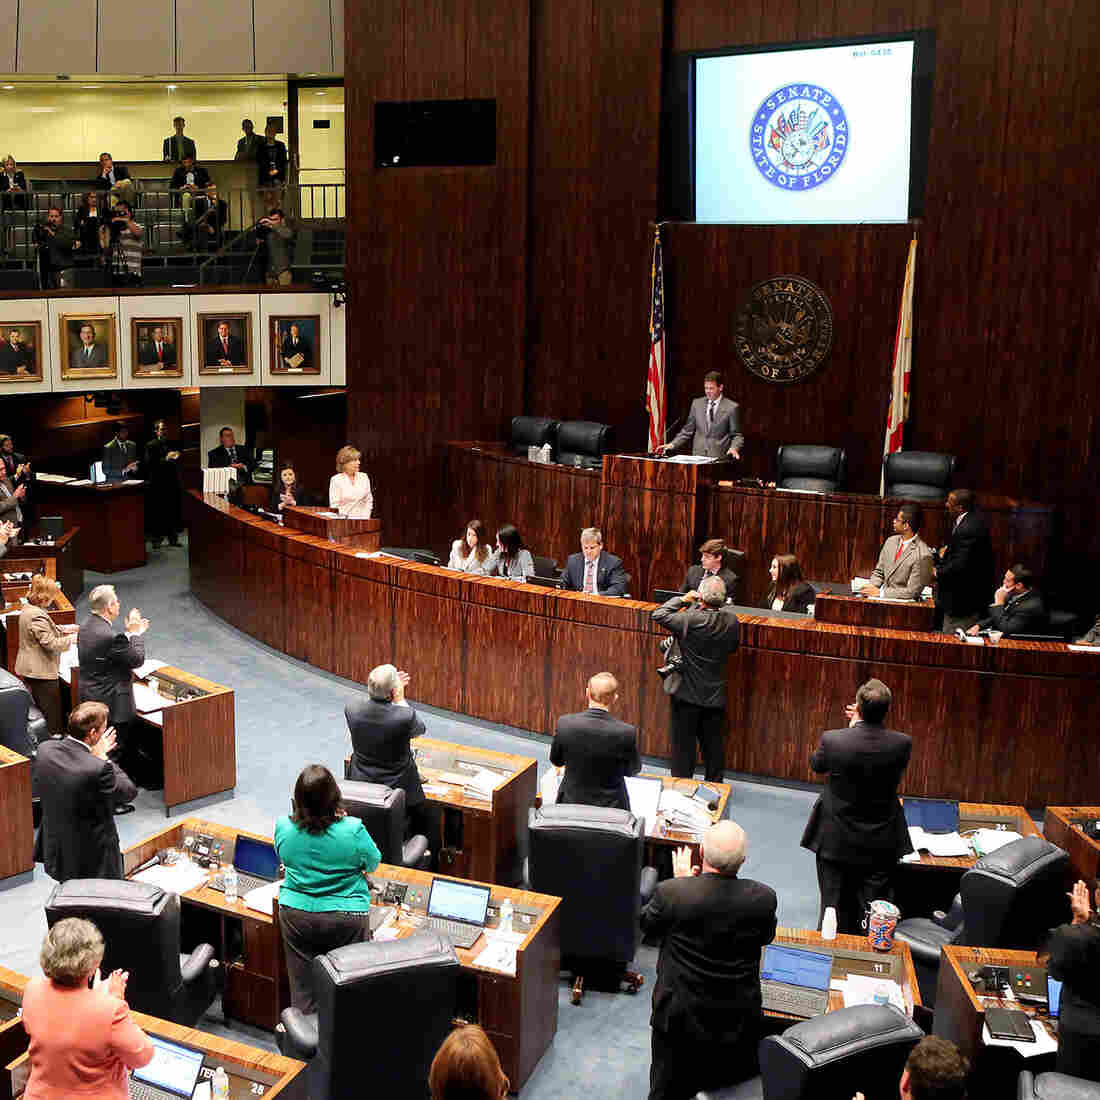 Florida's House Quits Early, At Impasse Over Medicaid Expansion